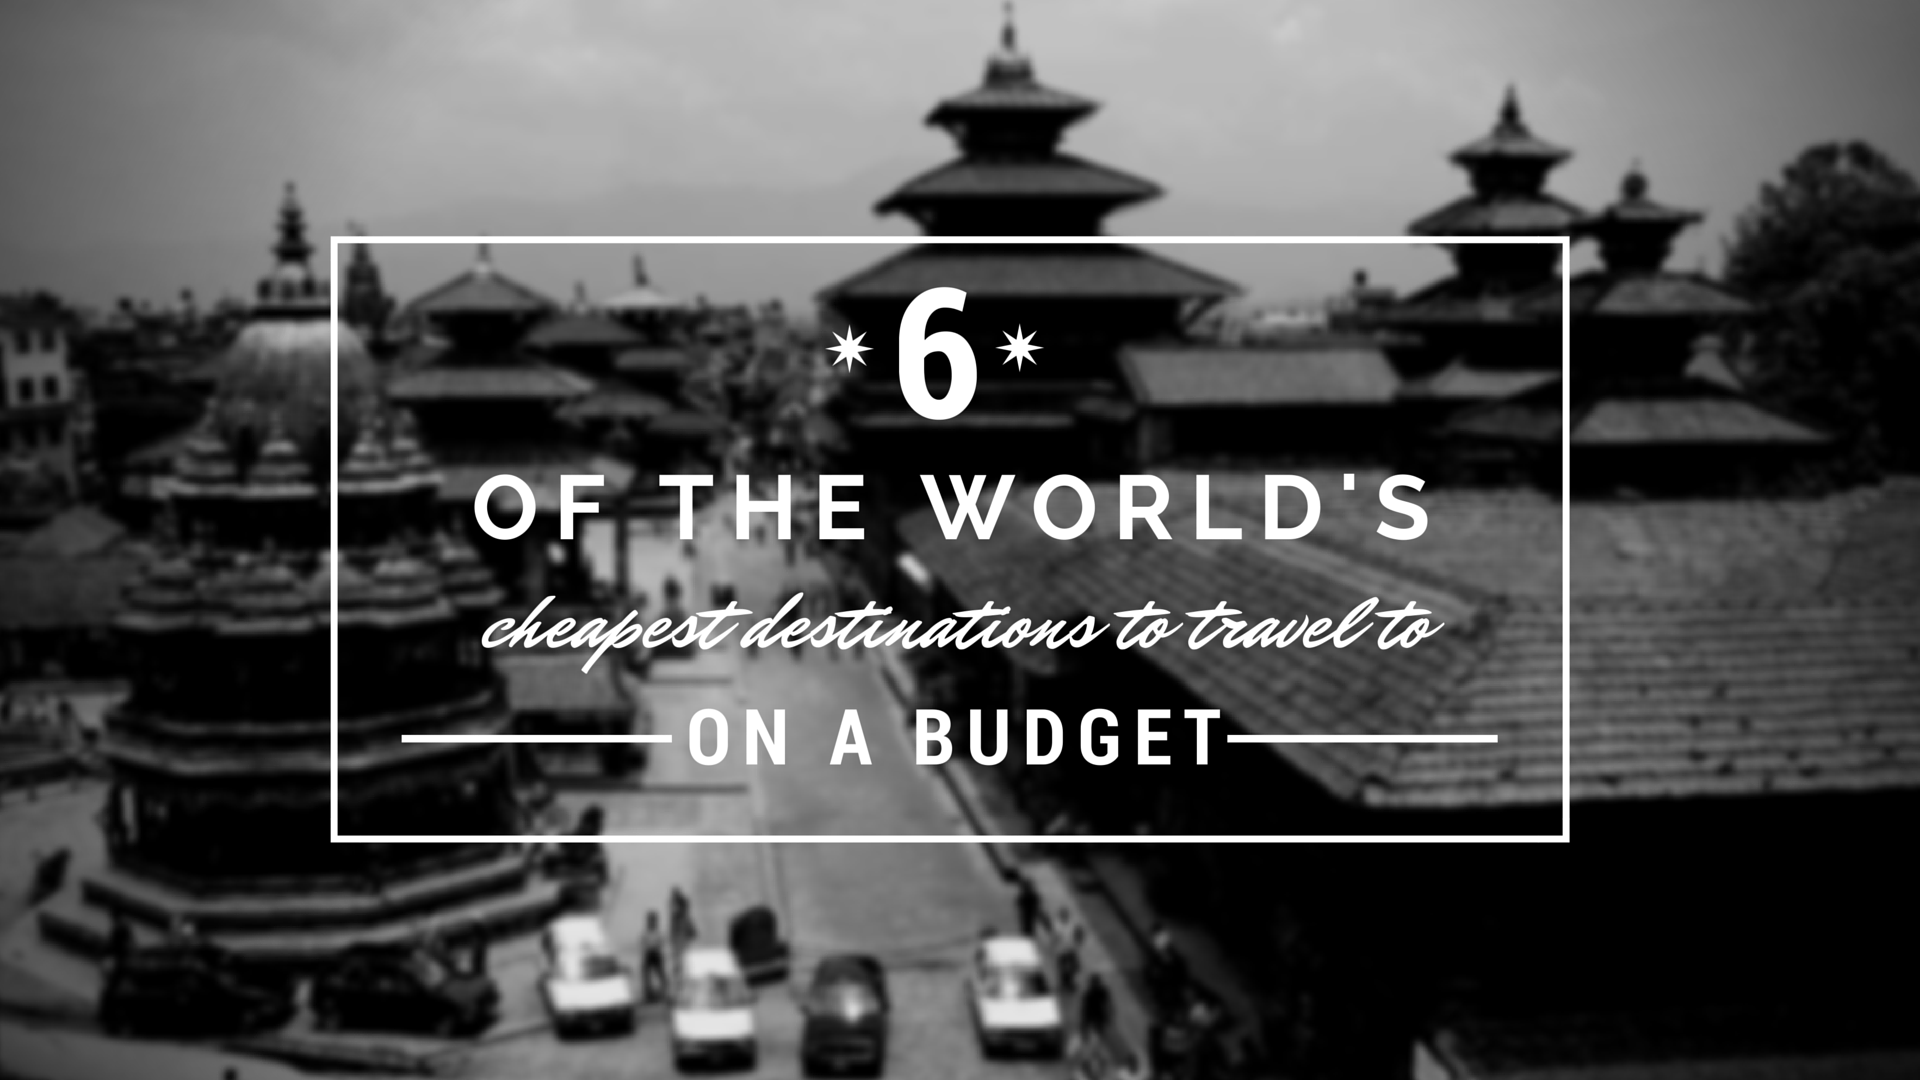 6 of the World's Cheapest Destinations to Travel to On a Budget